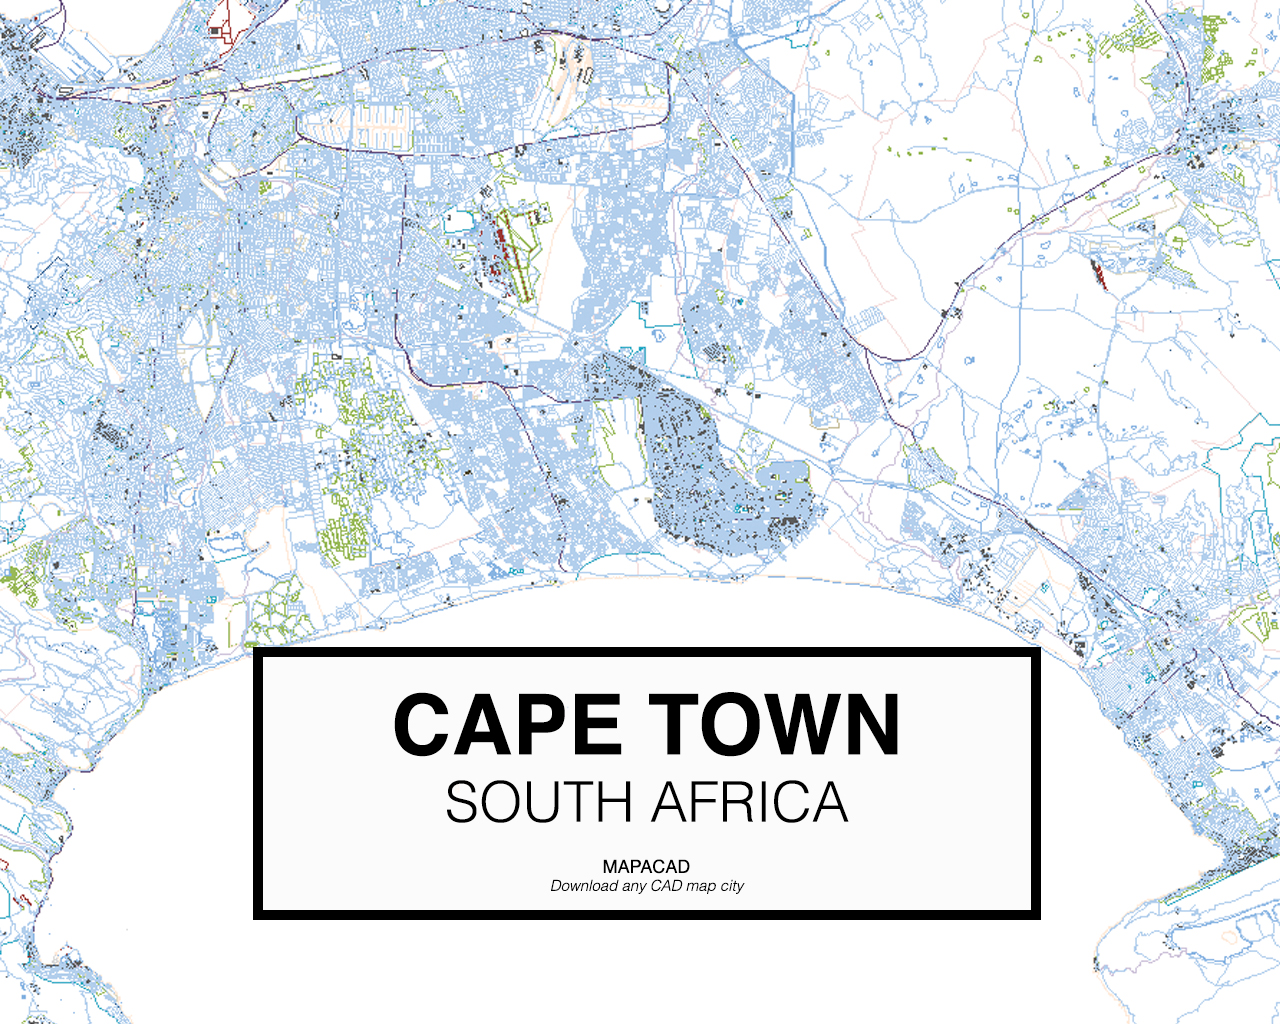 Download cape town dwg mapacad cape town south africa 01 mapacad download map gumiabroncs Images